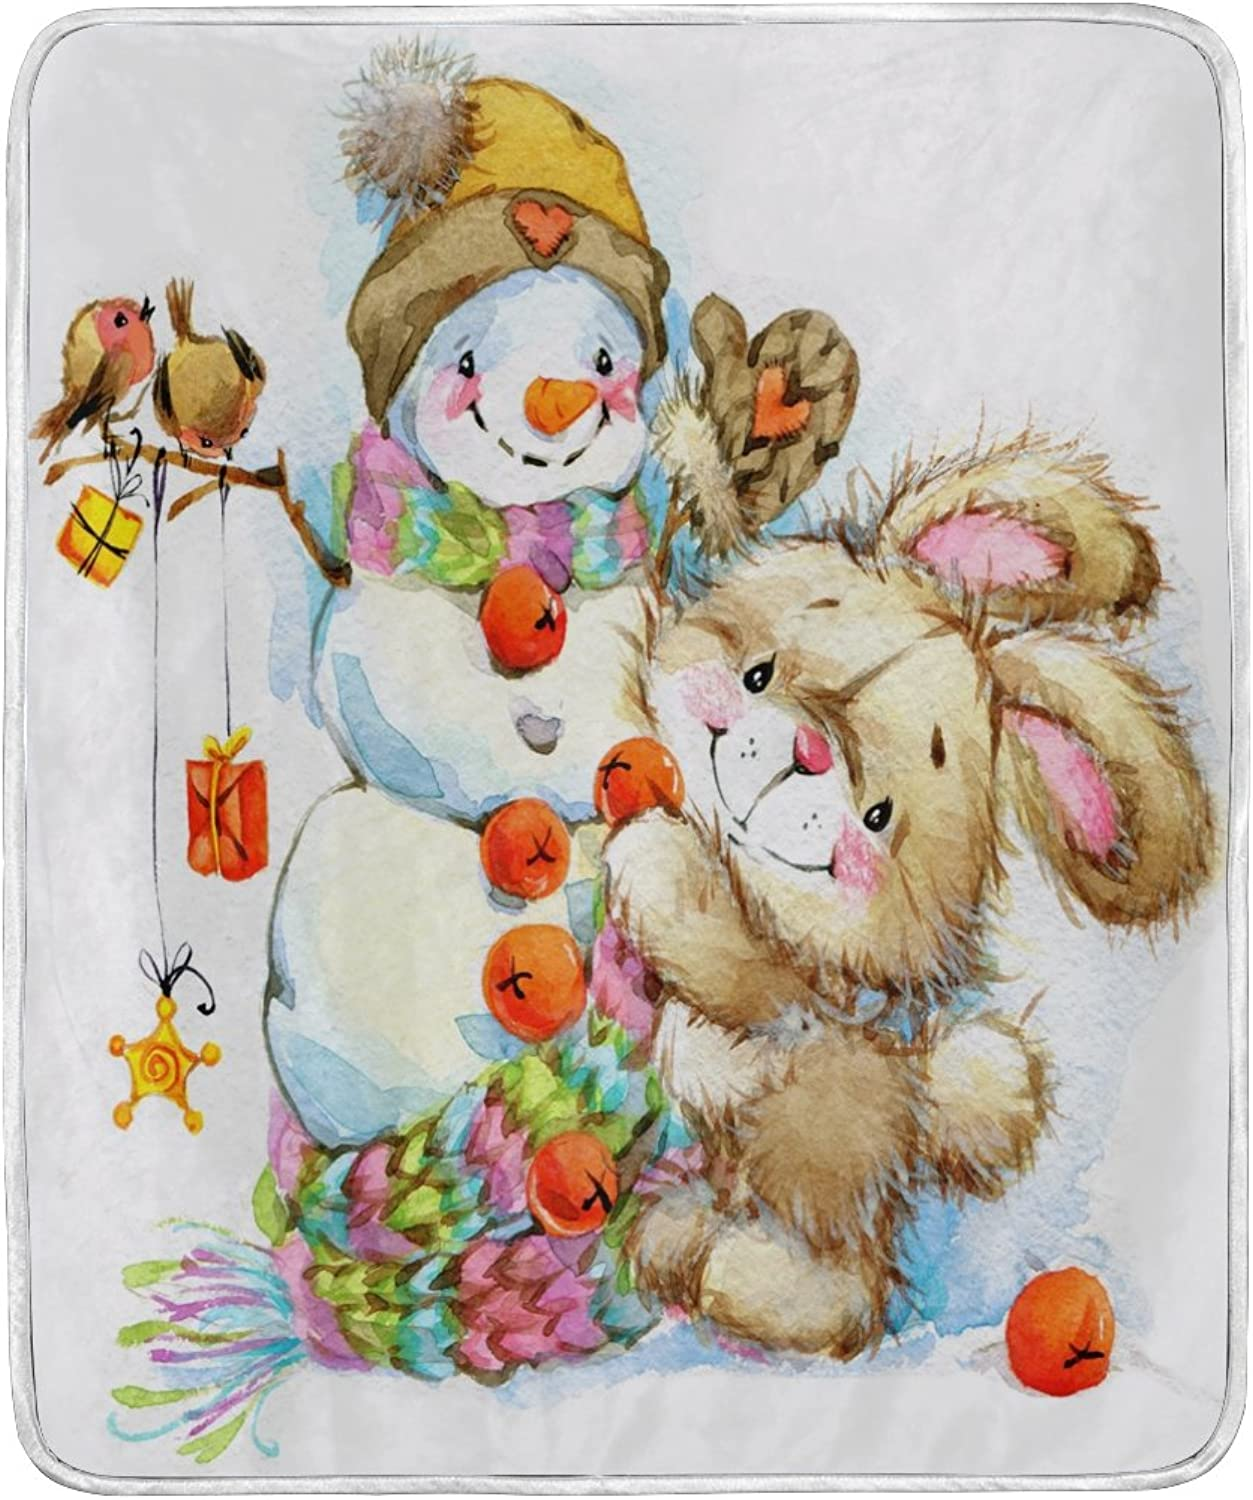 ALAZA Home Decor Watercolor Christmas Snowman Bunny Rabbit Soft Warm Blanket for Bed Couch Sofa Lightweight Travelling Camping 60 x 50 inch Throw Size for Kids Boys Girls